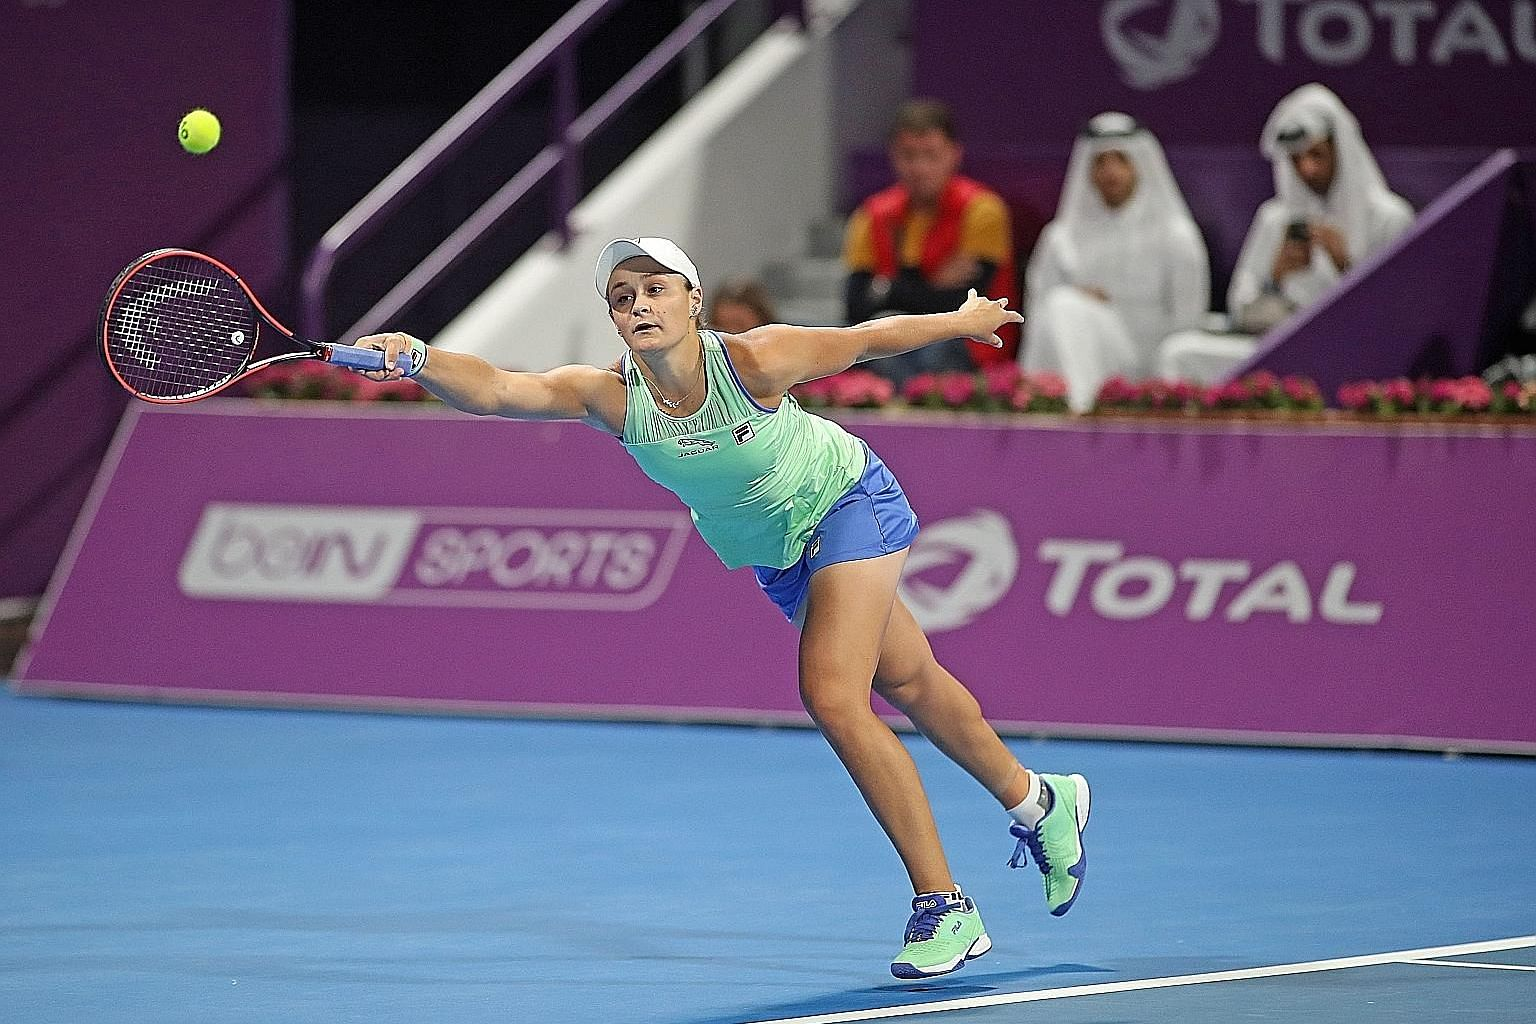 After a bright start to tennis as a precocious teen, Ashleigh Barty spent time playing cricket, before returning to the court with success. She won the 2018 US Open with Coco Vandeweghe in the women's doubles and last year's French Open singles.